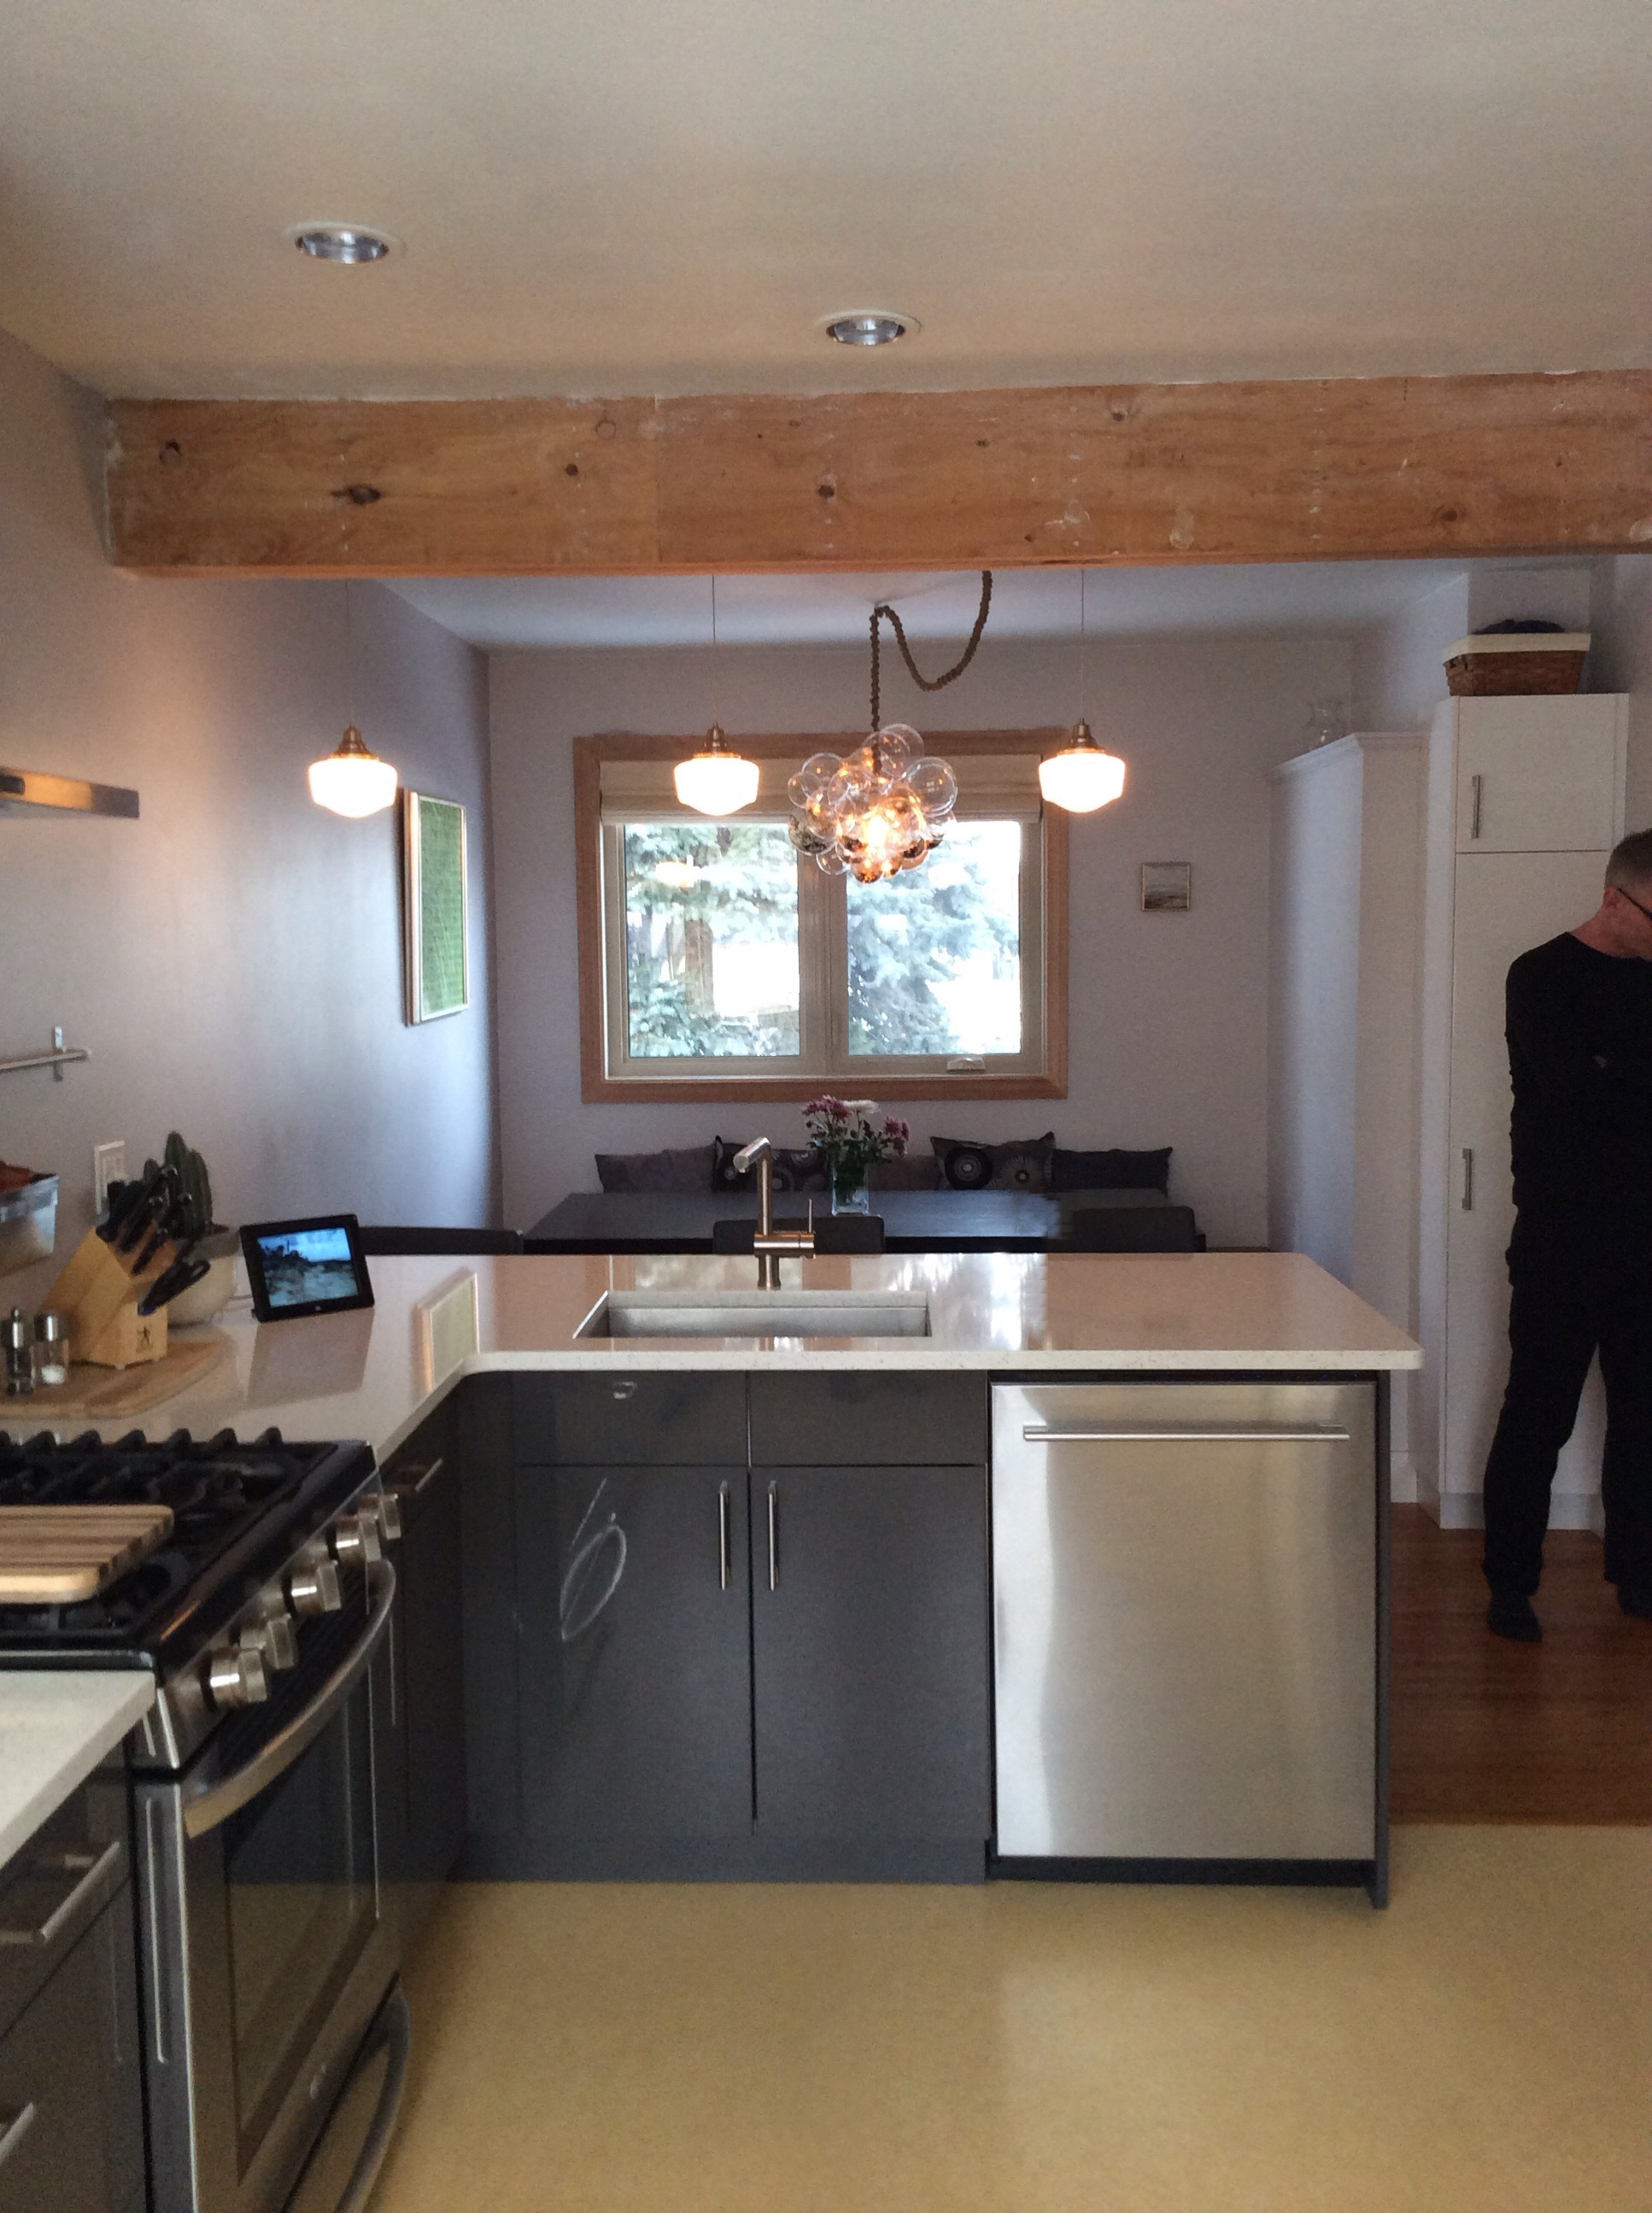 Westmount Kitchen and Dining Room After